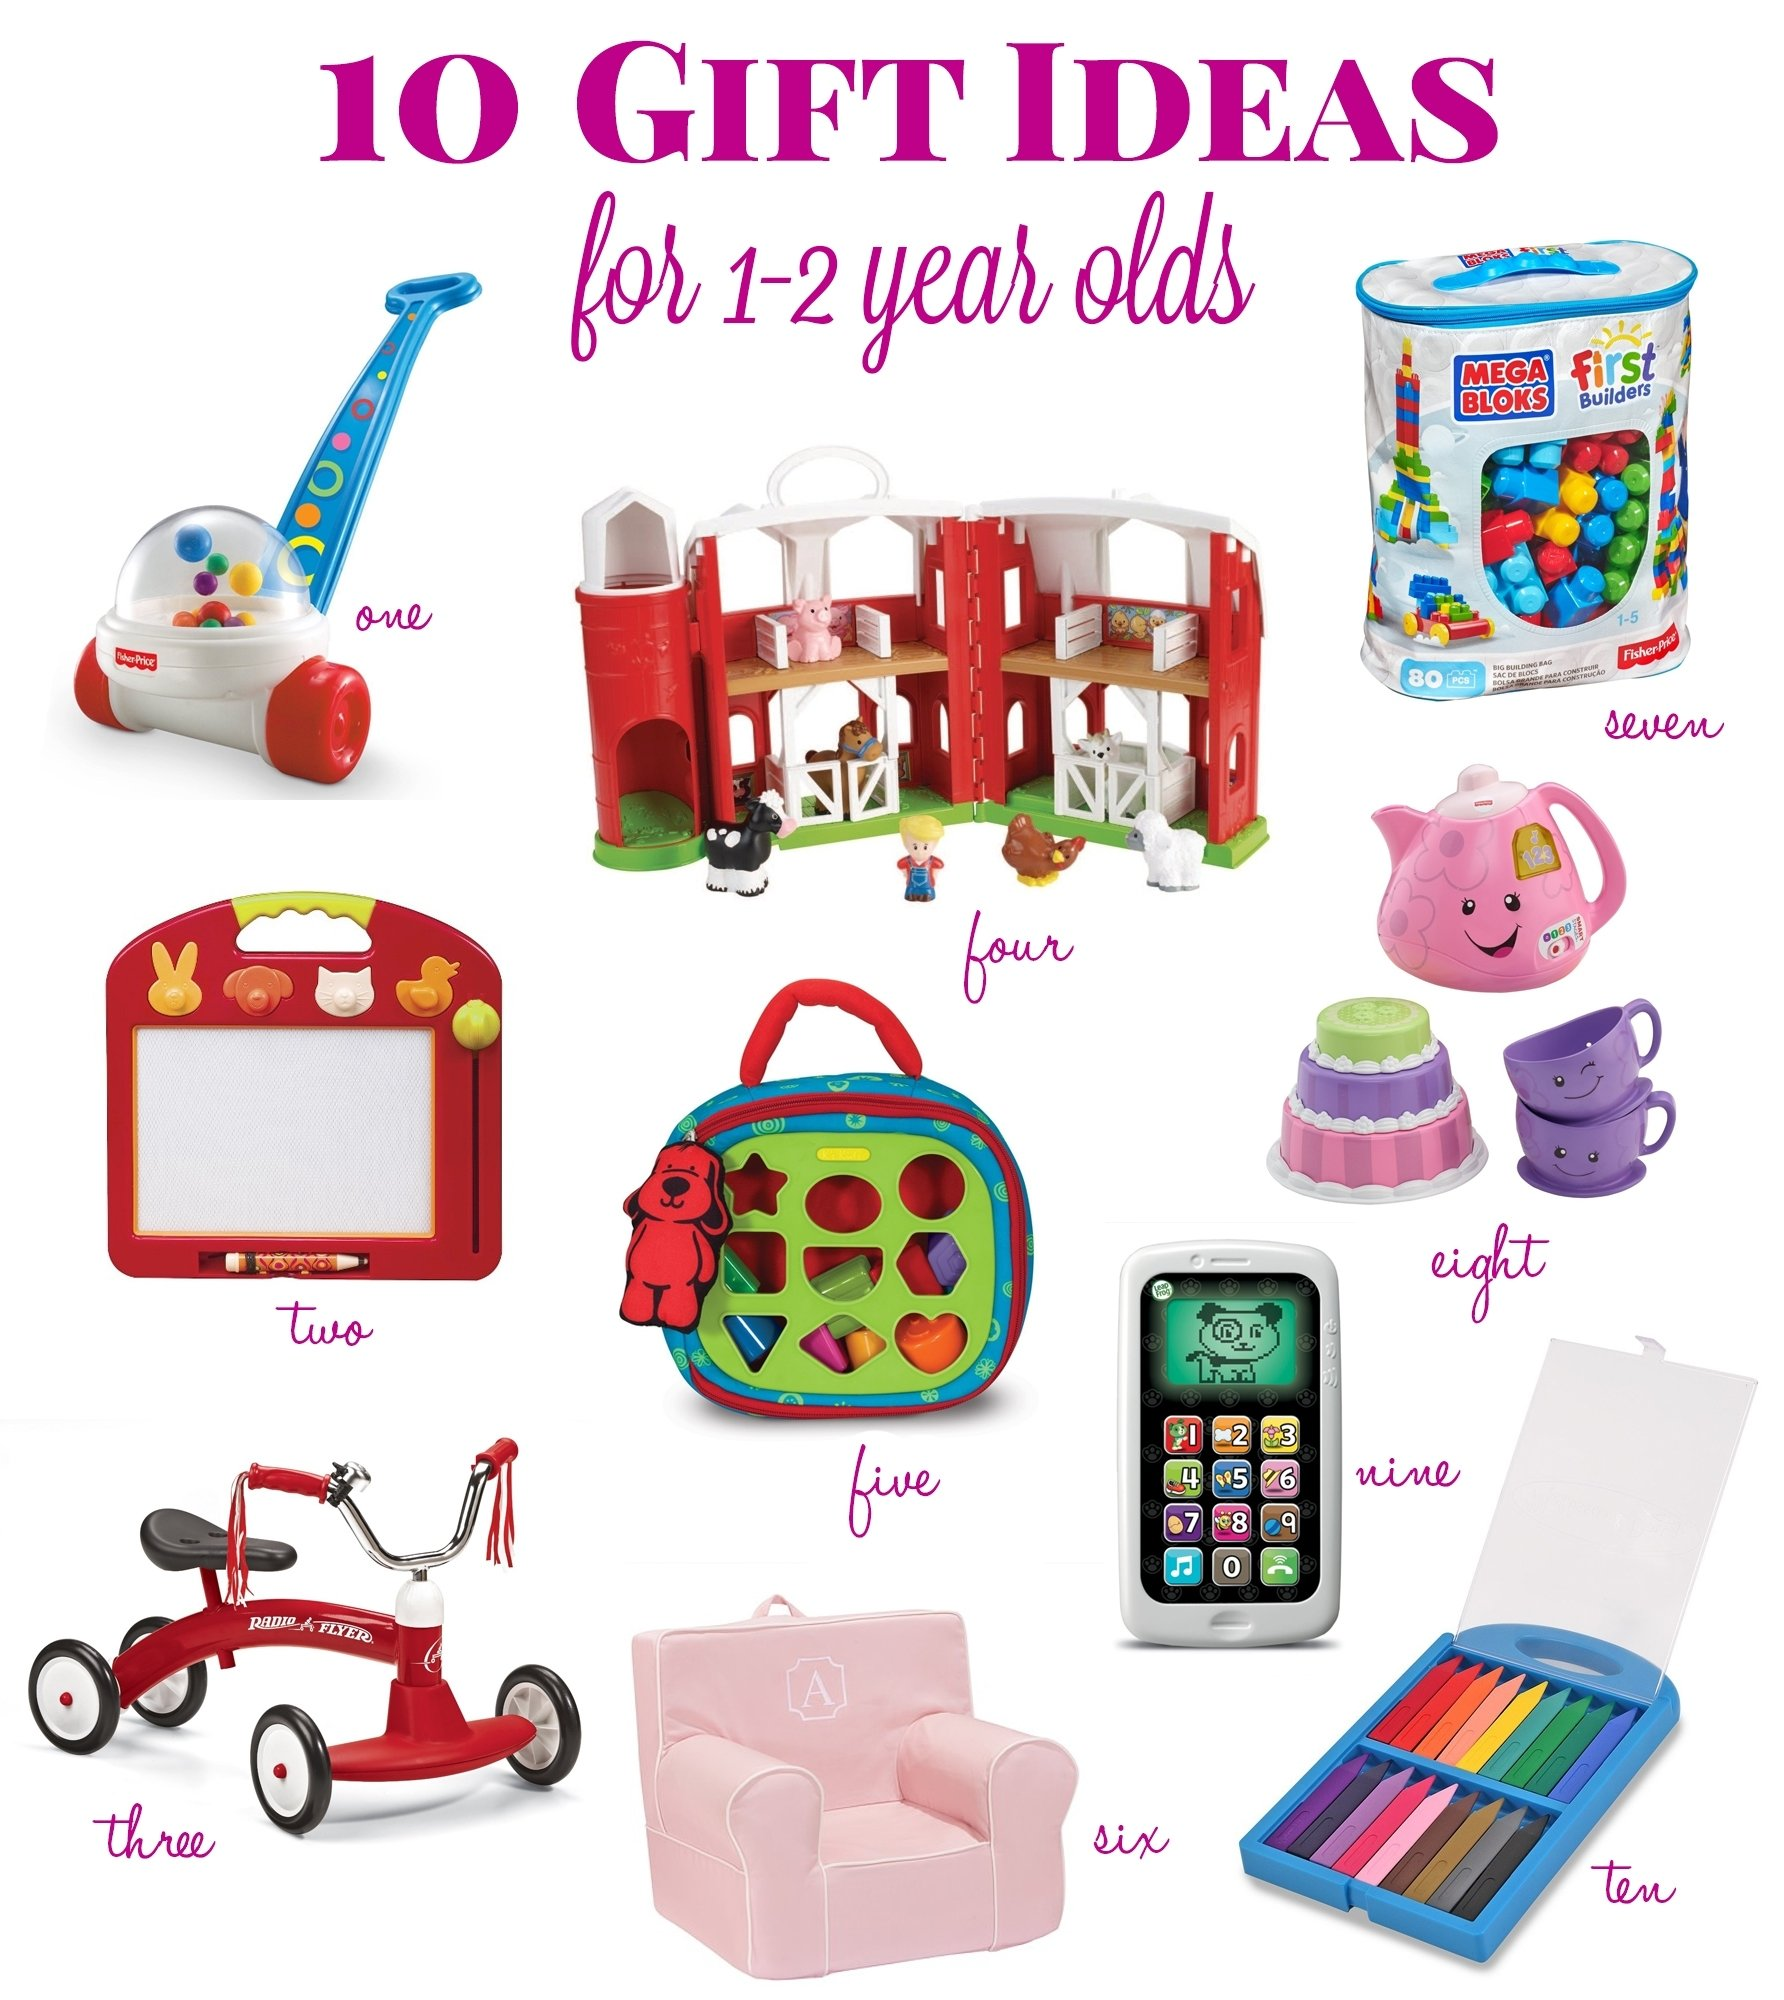 10 Unique Gift Ideas For 2 Year Old gift ideas for a 1 year old lifes tidbits 3 2020